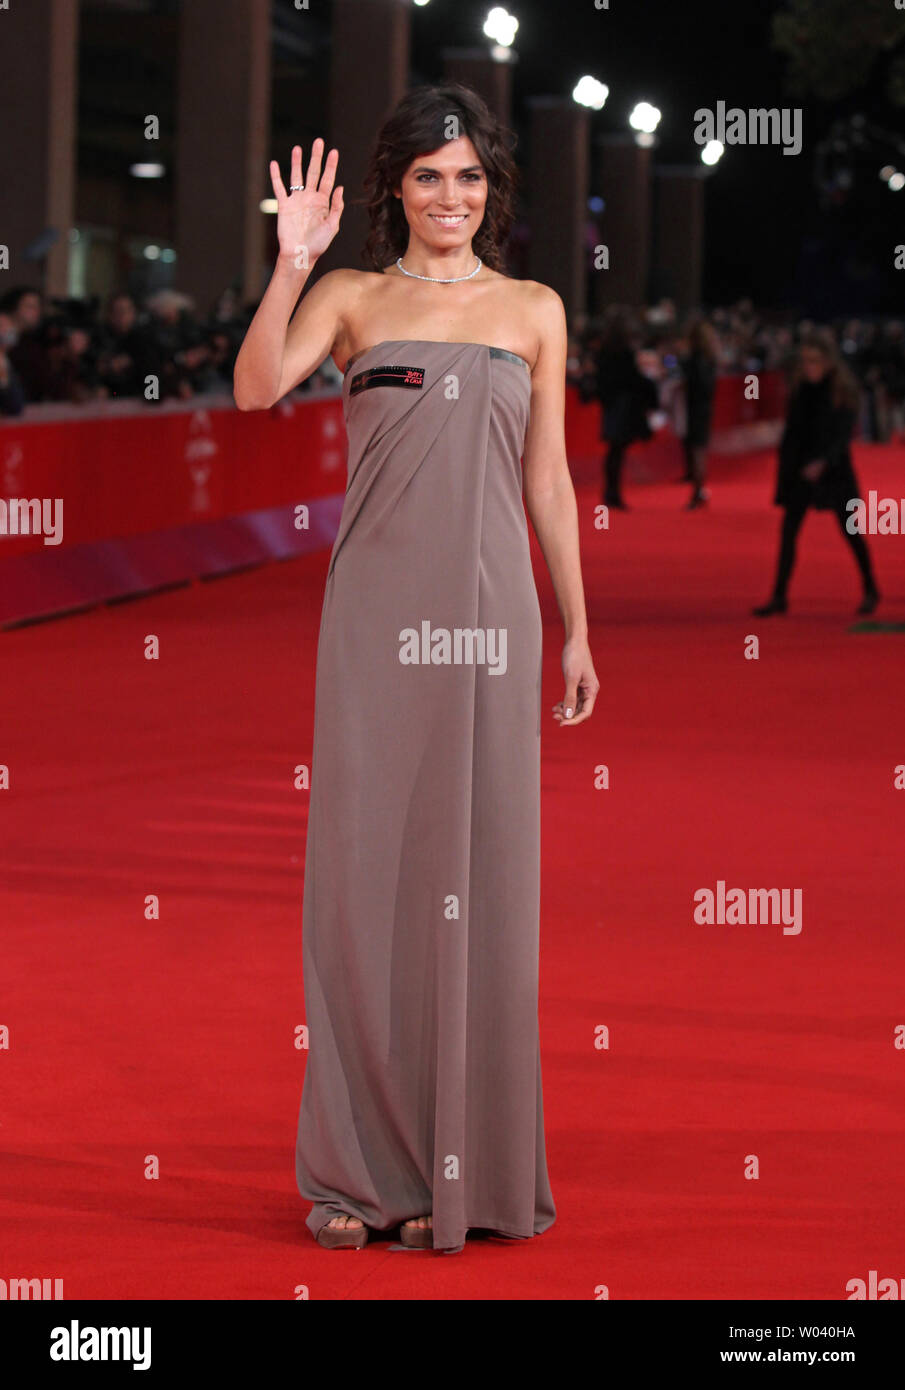 Valeria Solarino arrives on the red carpet before the screening of a digitally restored version of the 1960 classic film 'La Dolce Vita' during the 5th Rome International Film Festival in Rome on October 30, 2010.   UPI/David Silpa - Stock Image